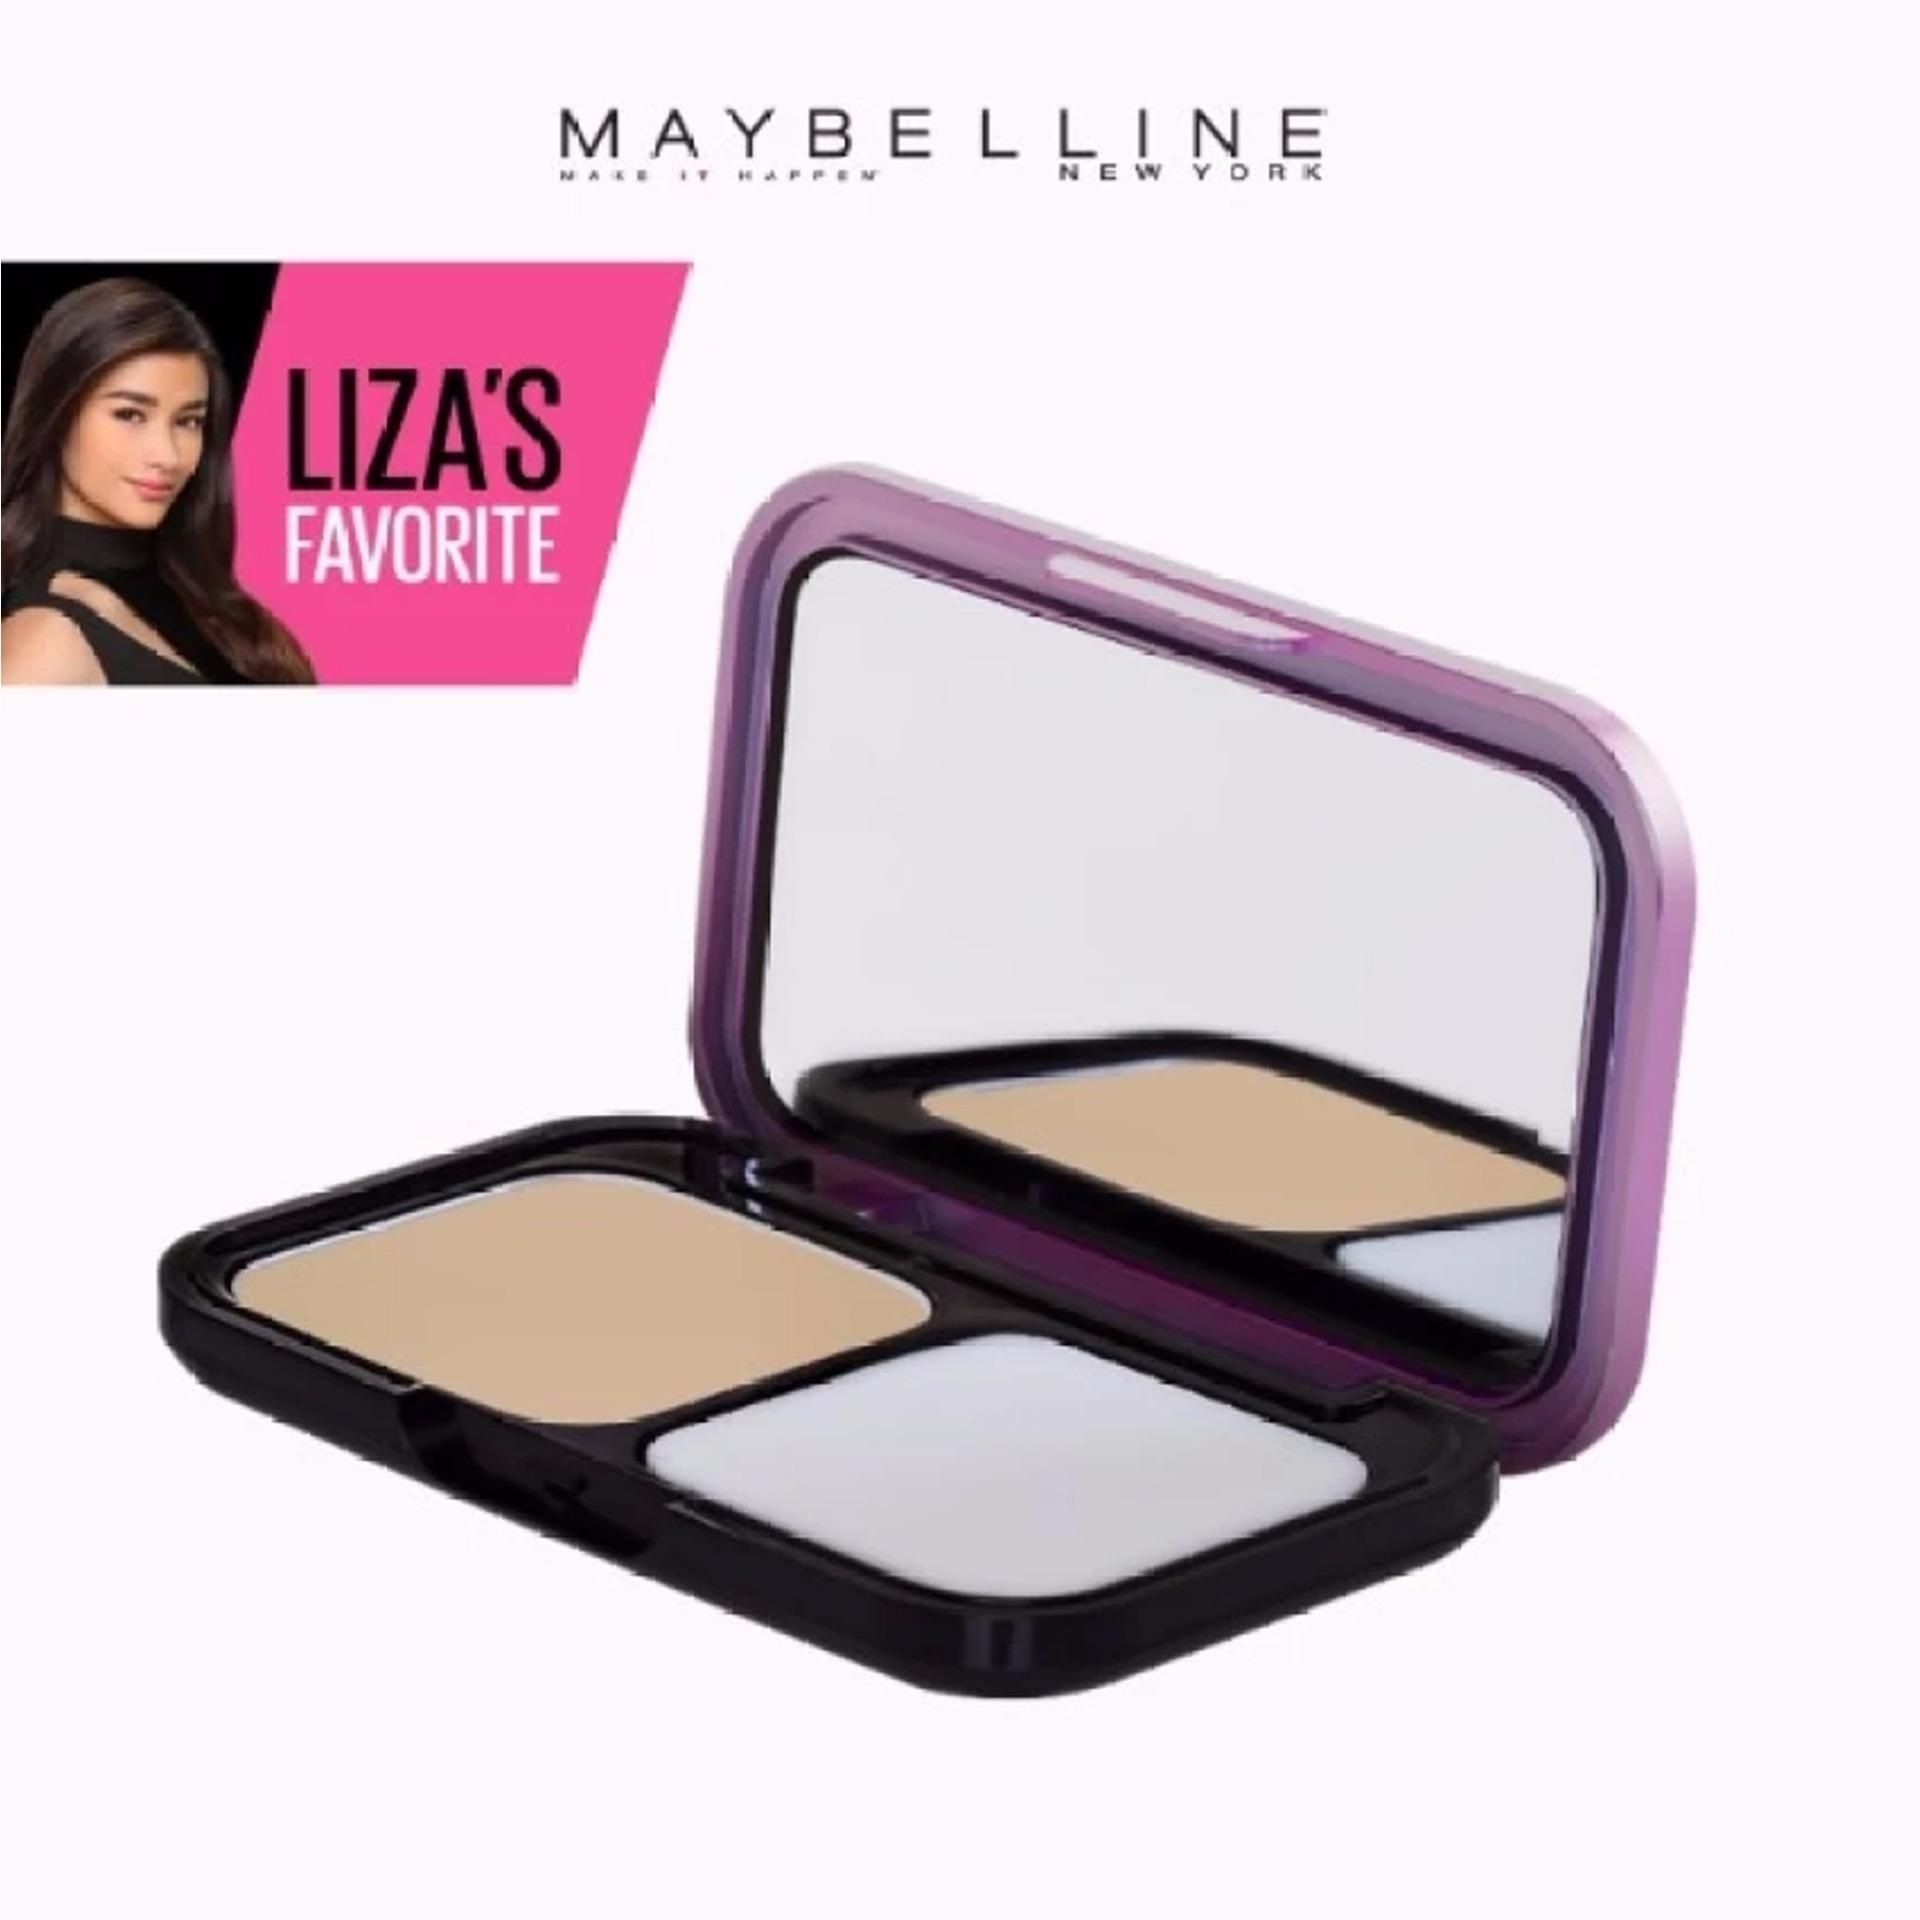 Clearsmooth All In One Powder Foundation – 05 Sand Beige SPF32 PA+++ [Lizas Powder] by Maybelline Philippines